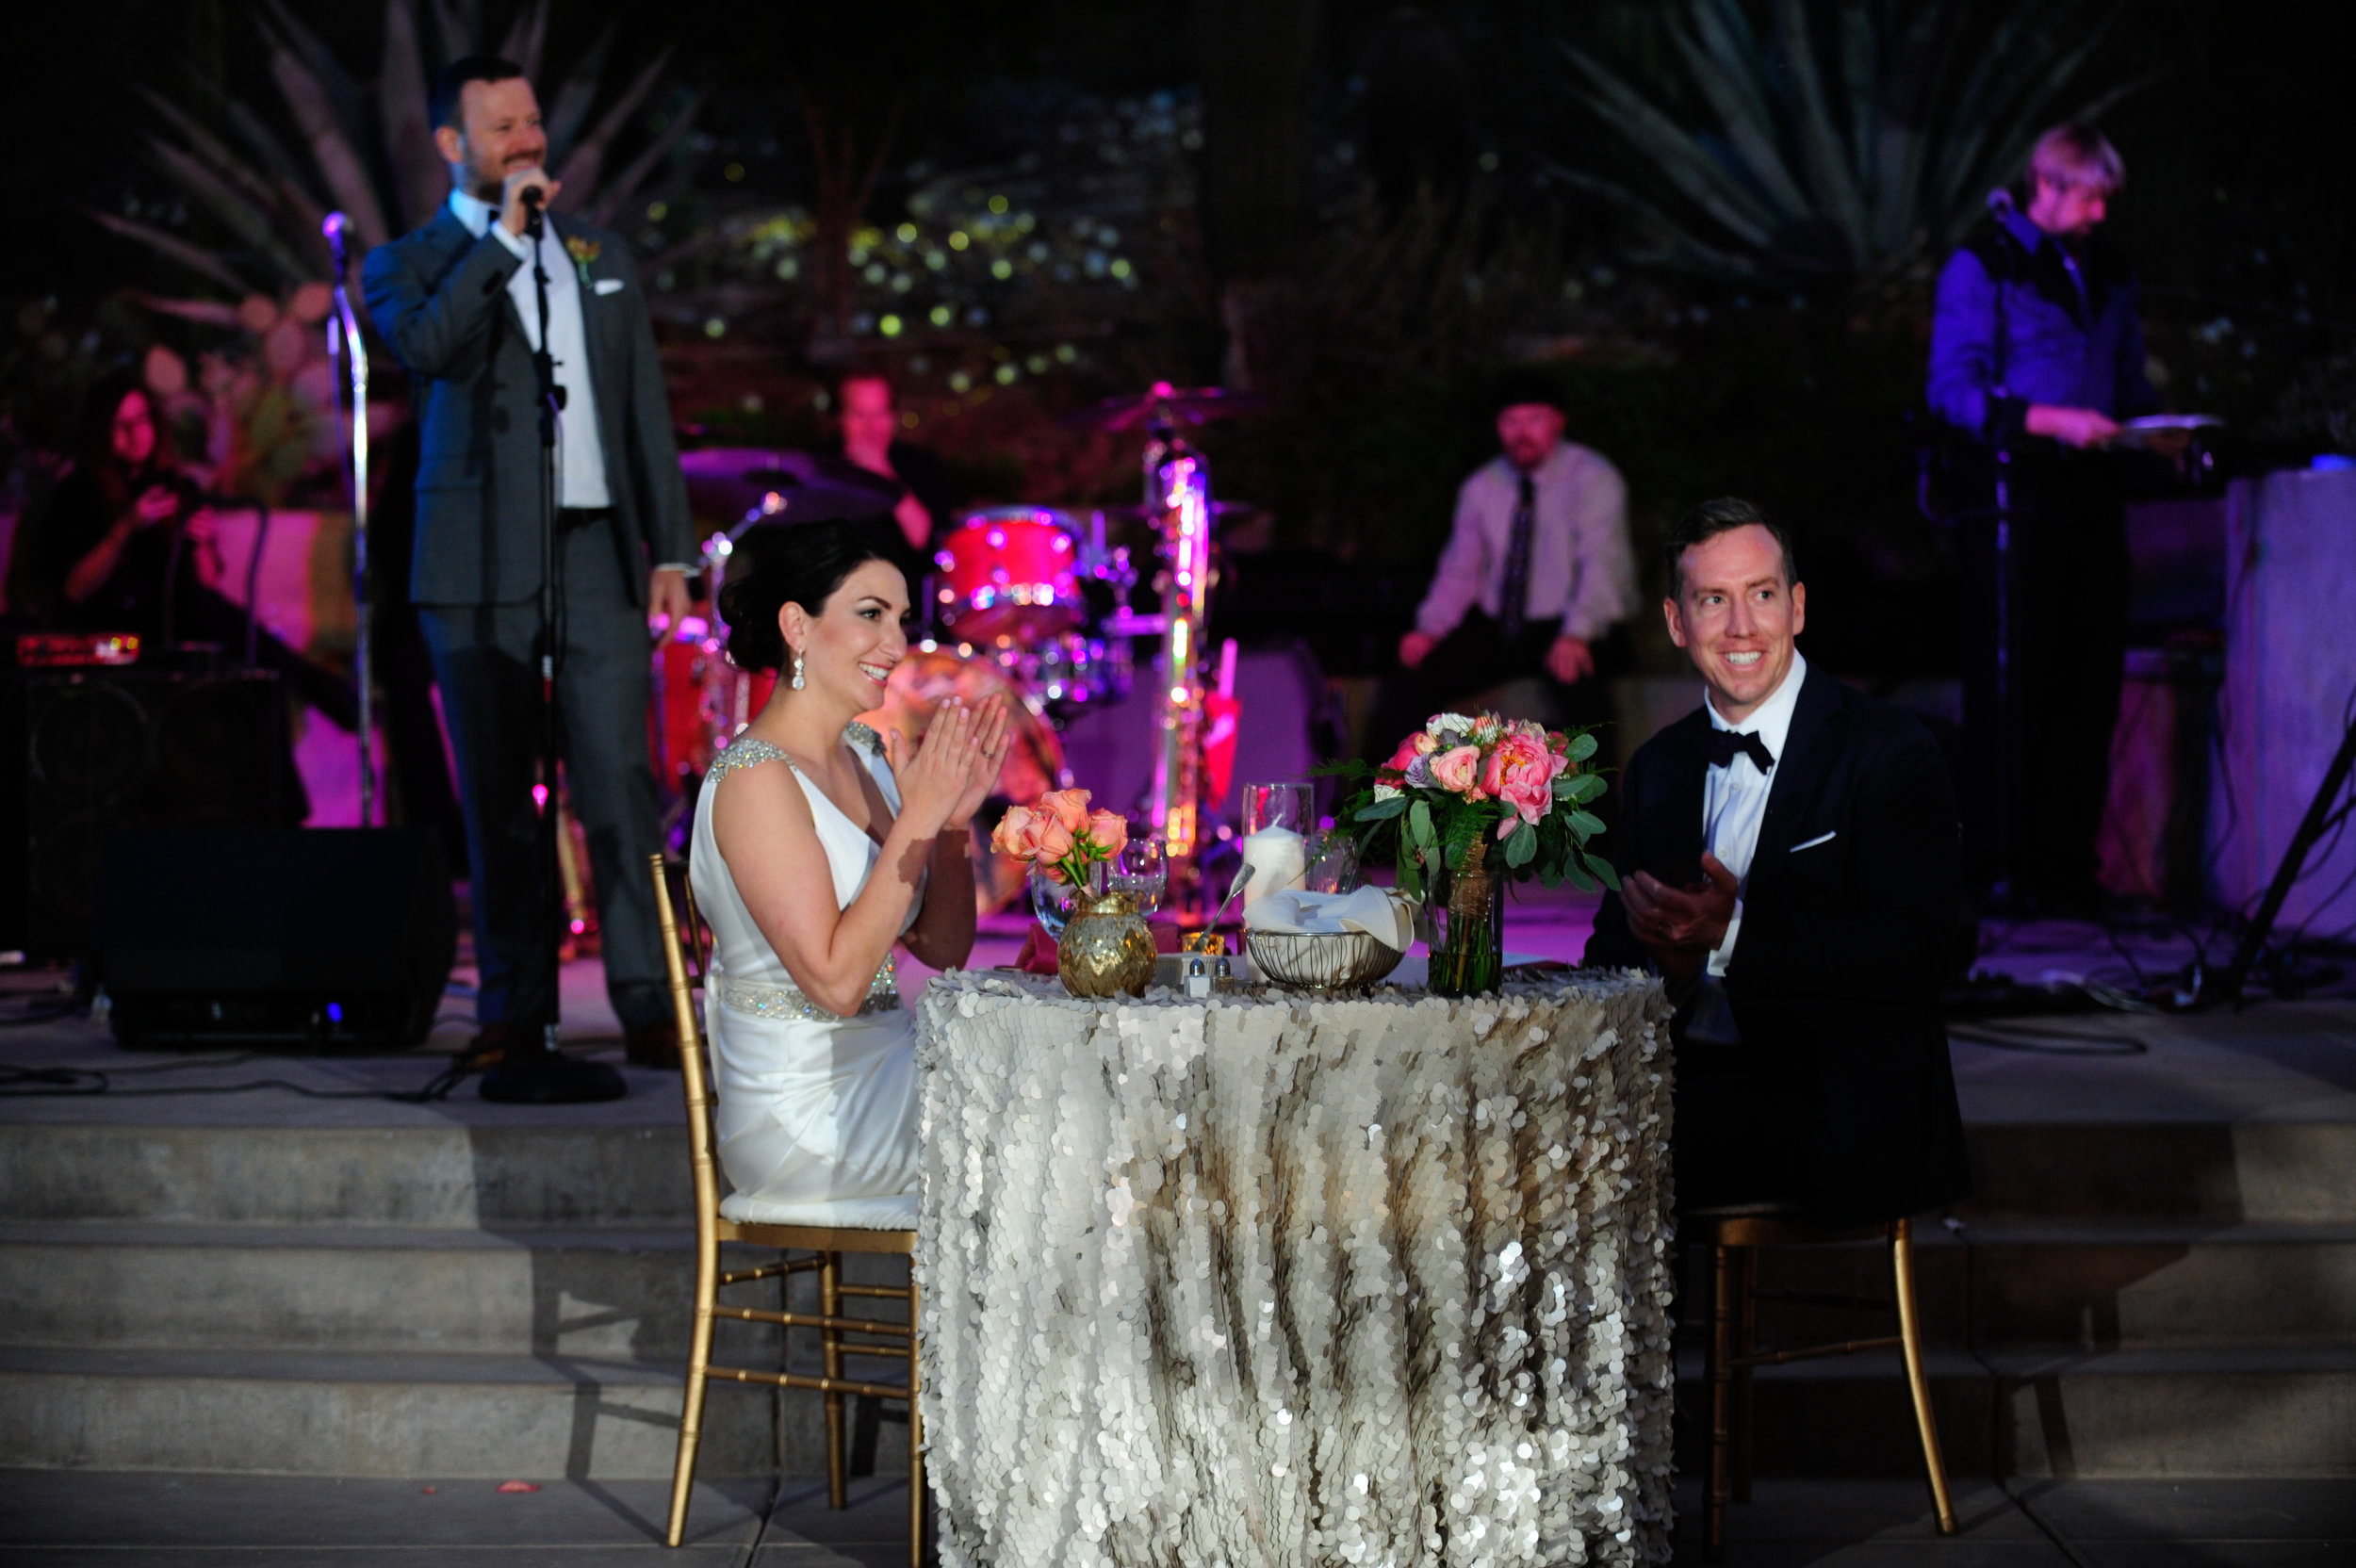 30 sweetheart table bride and groom table bride and groom at reception Mod Wed Photography Life Design Events.jpg